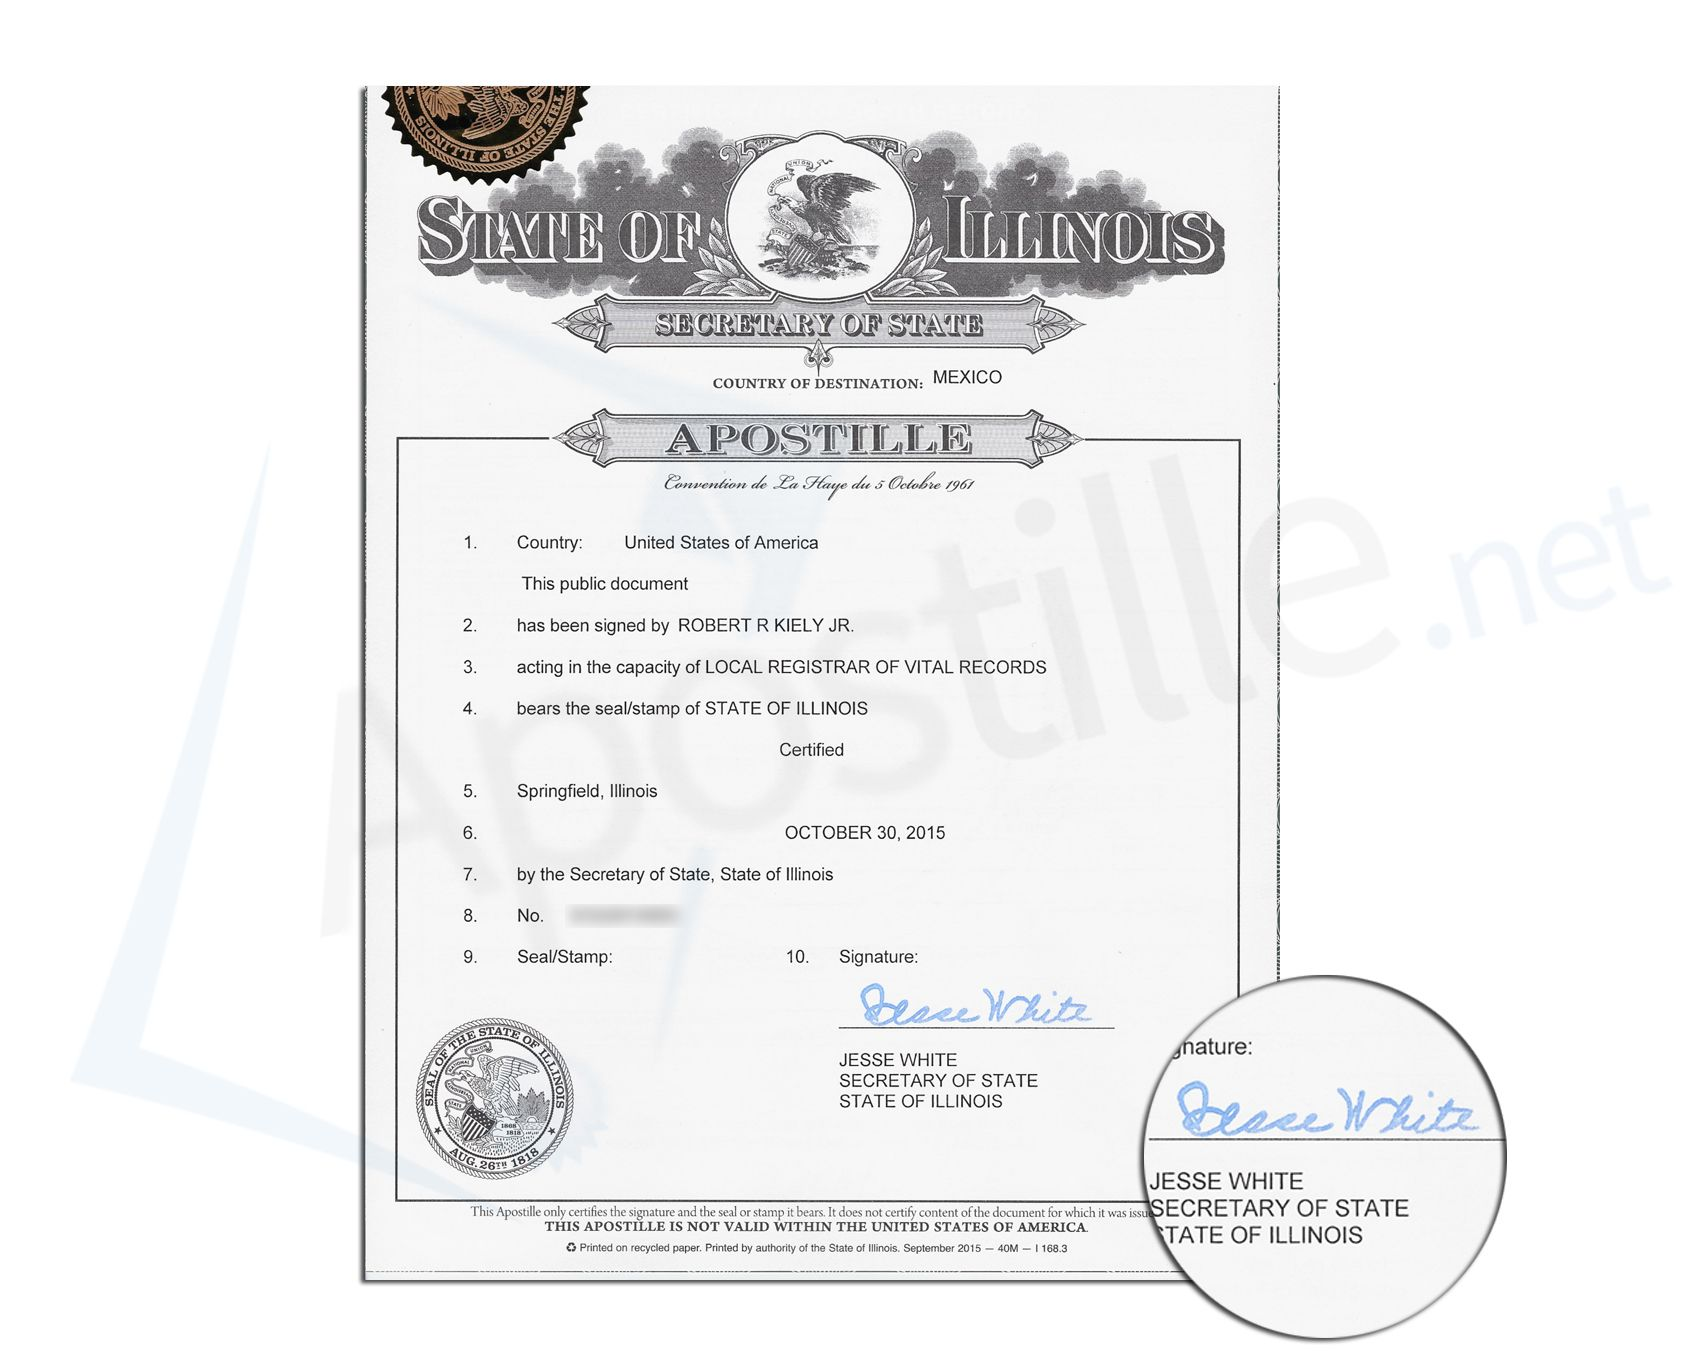 23 best state of illinois sample apostille images on pinterest state of illinois apostille signed by jesse white secretary of state of a document xflitez Choice Image